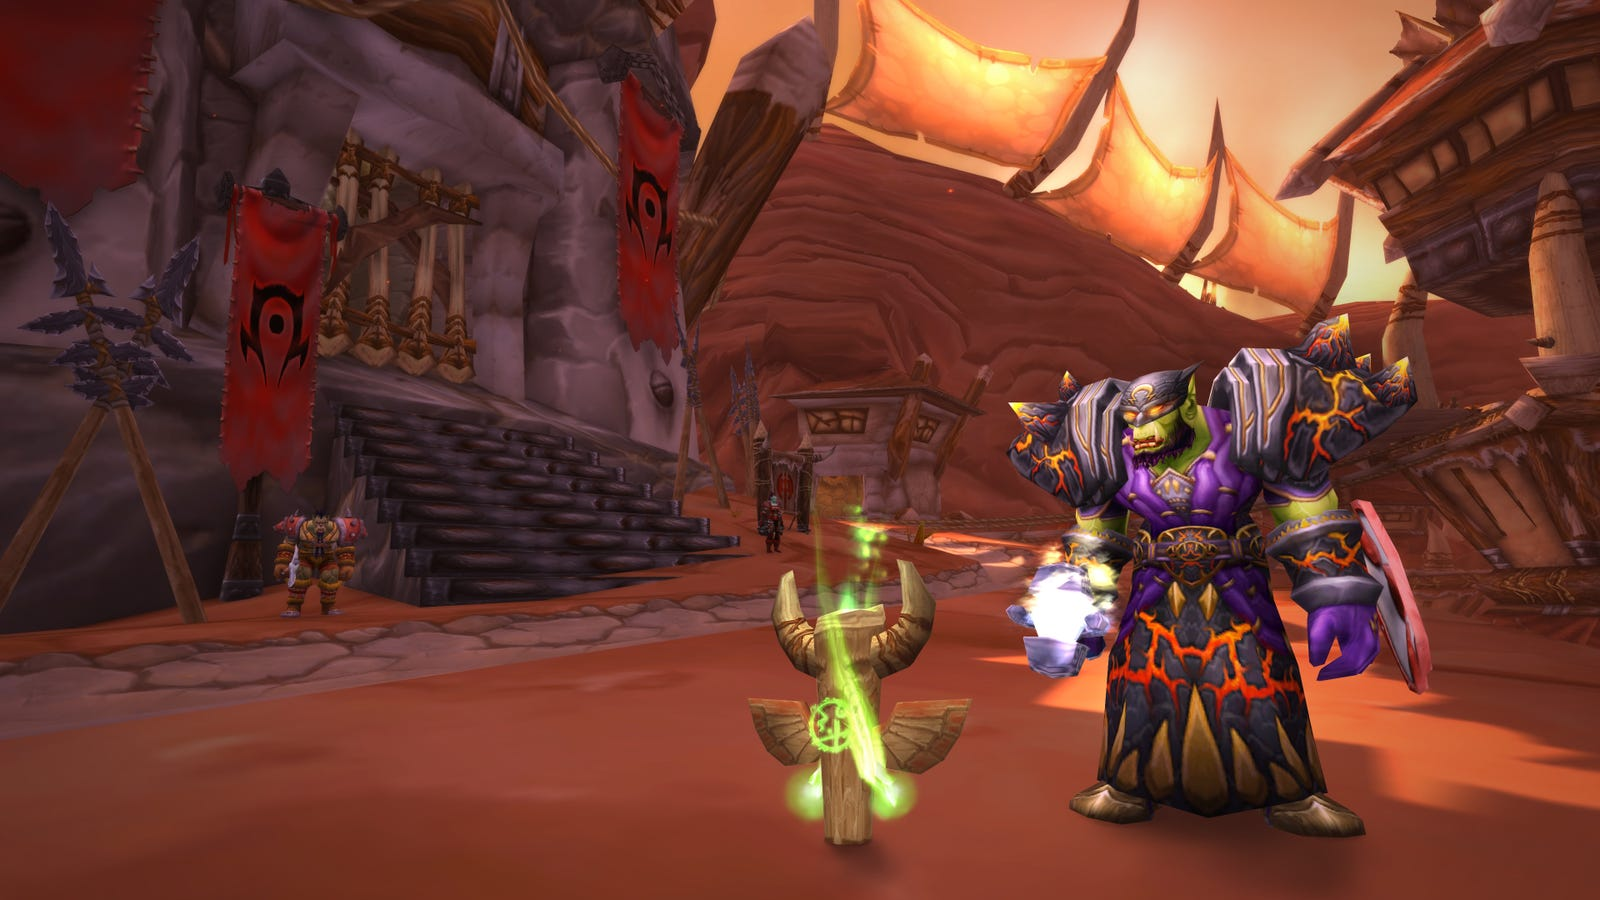 World Of Warcraft Classic Beta Players Are Reporting Bugs That Are Actually Just Features From The Past - Kotaku